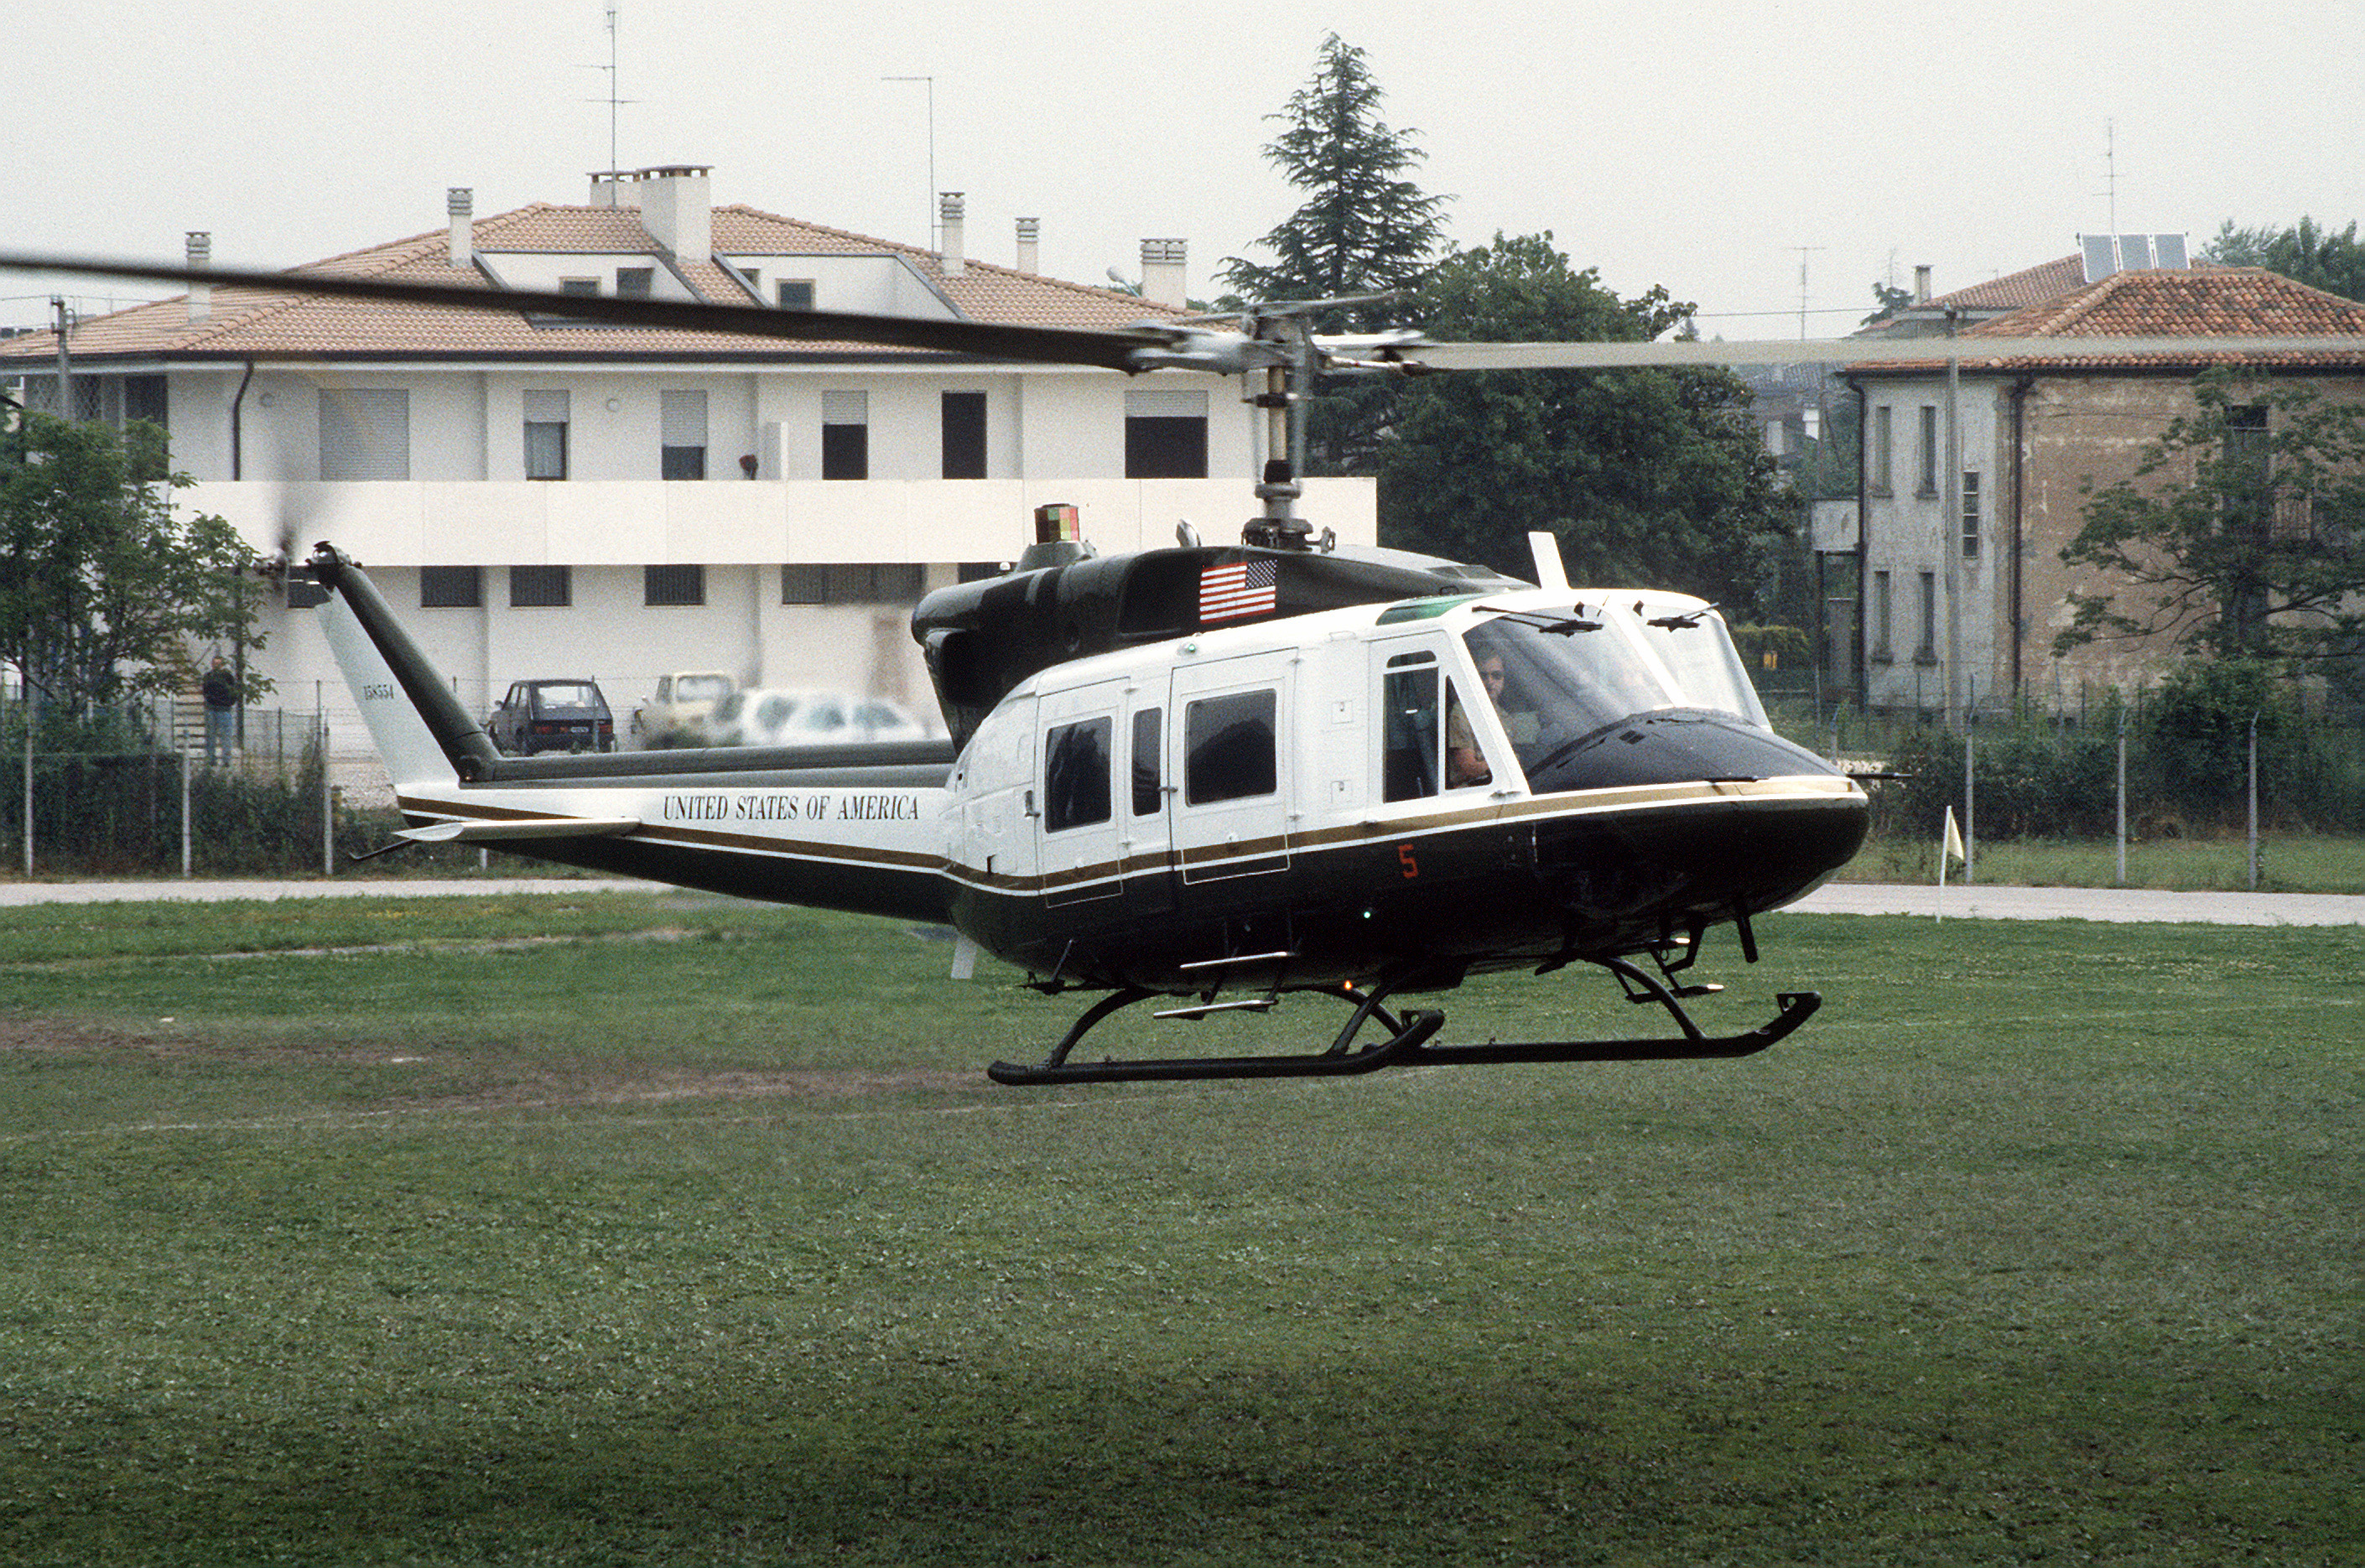 File:VH-1N HMX-1 in northern Italy 1987.JPEG - Wikimedia ...